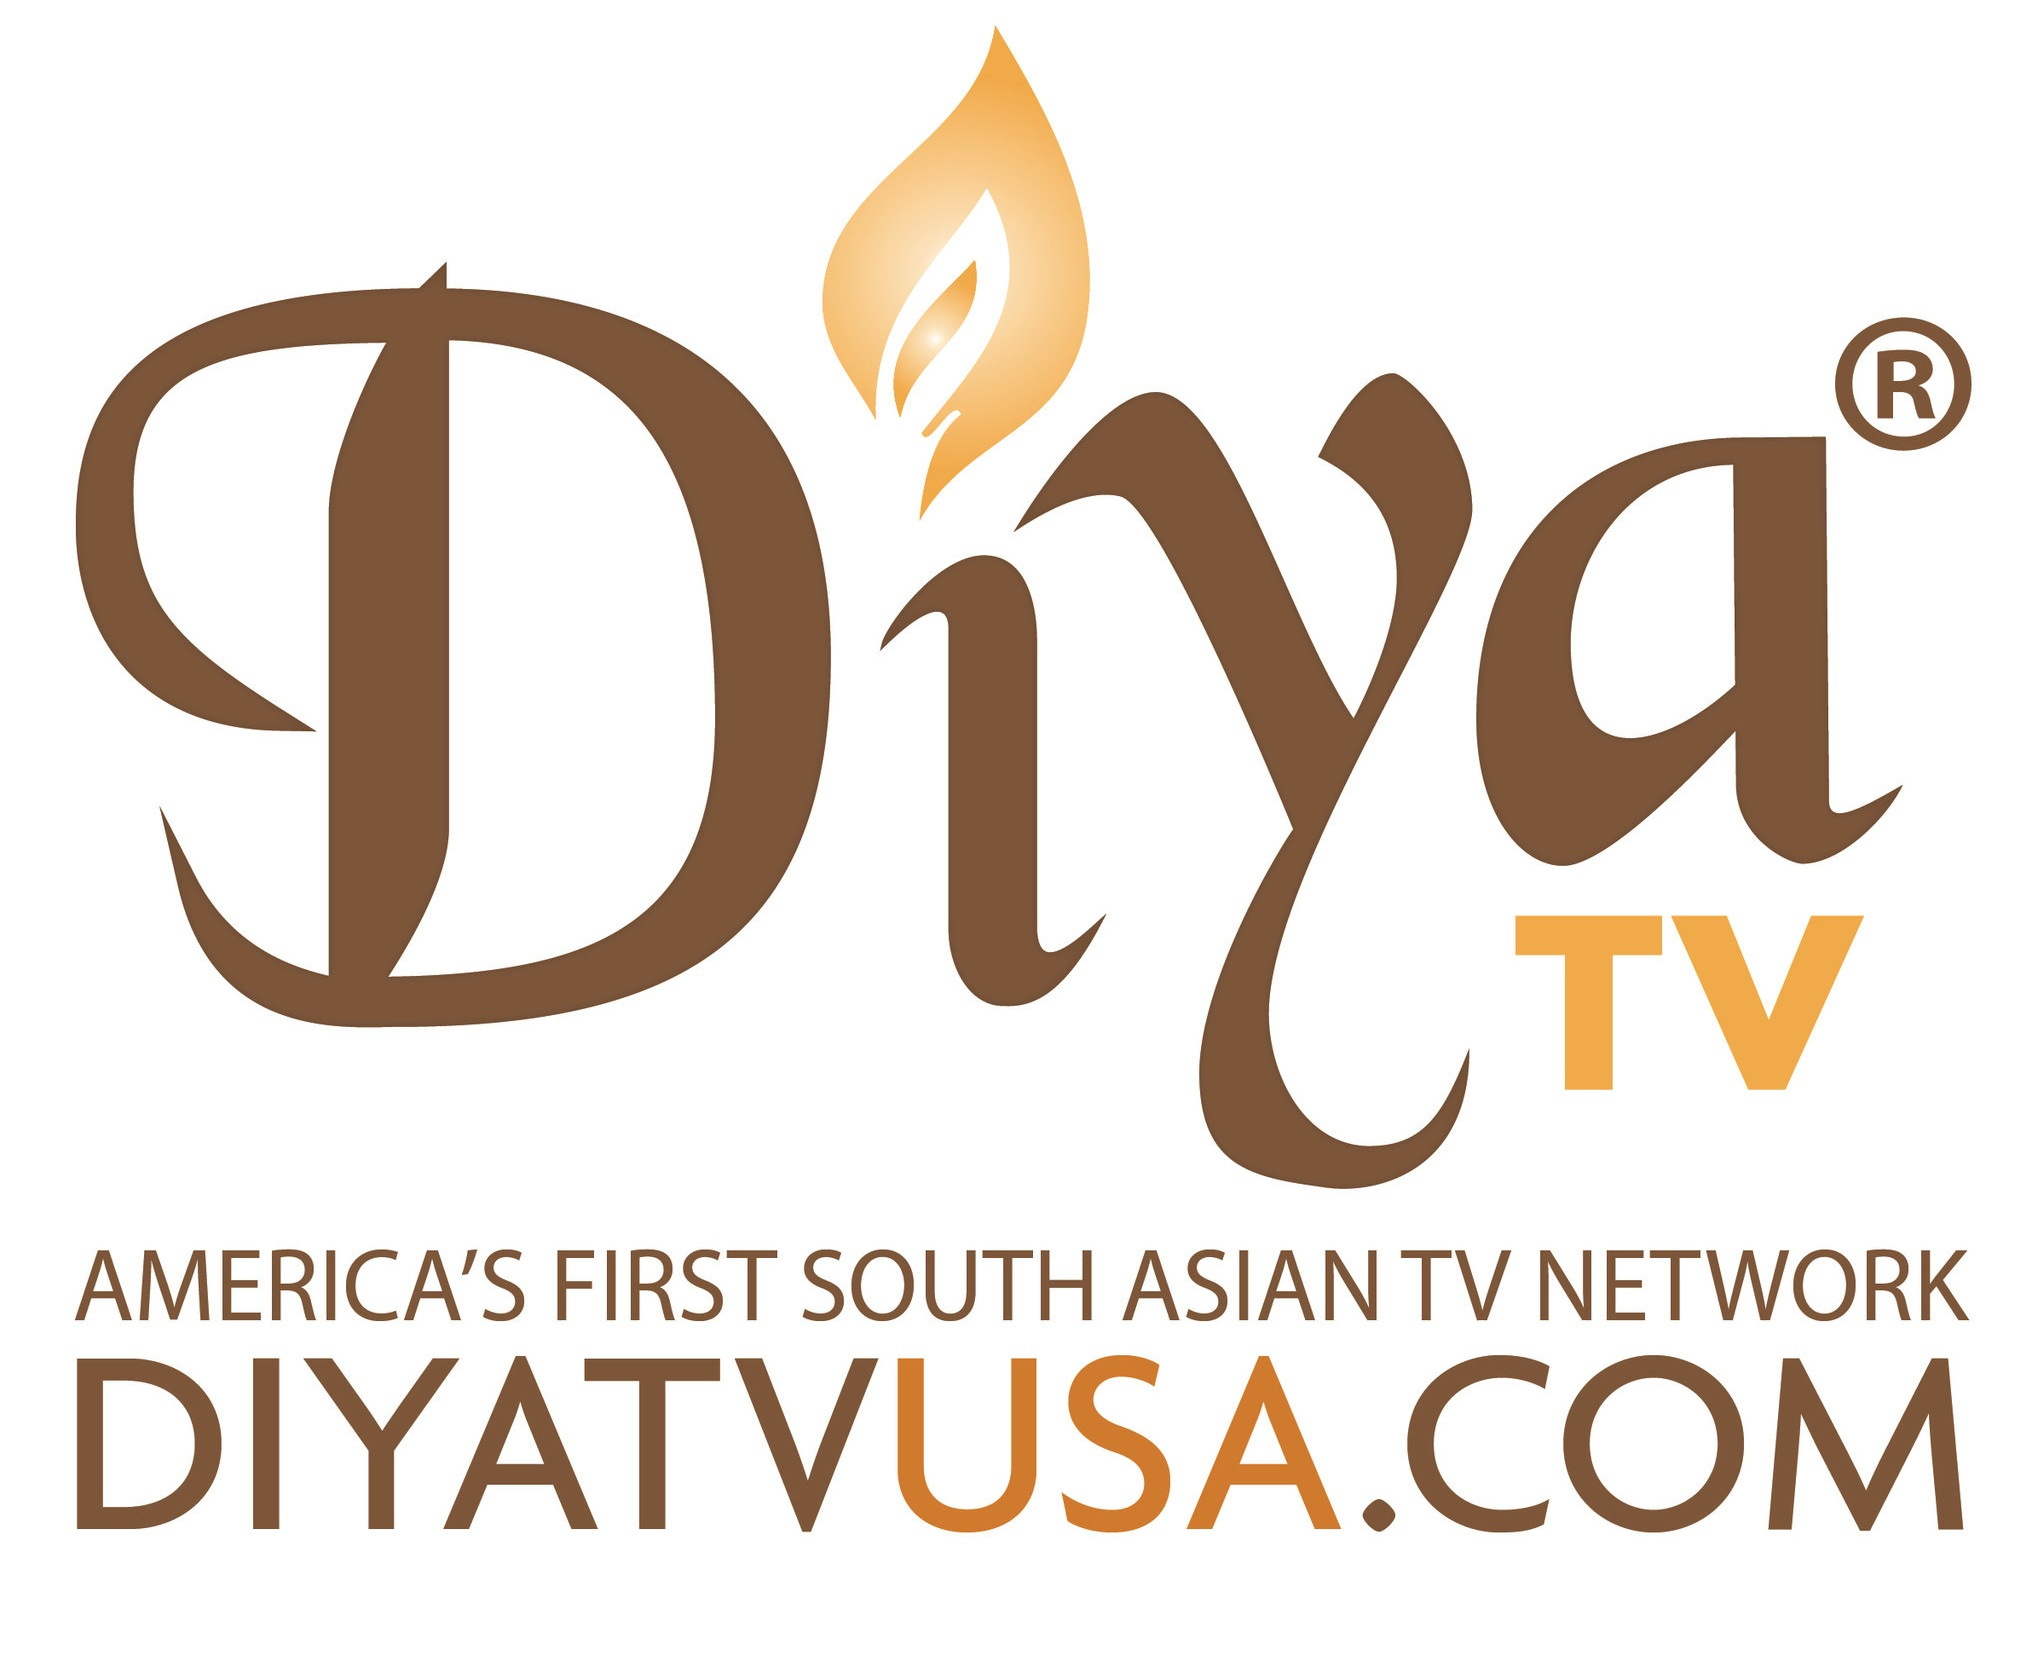 DIYA+website+LOGO.jpg